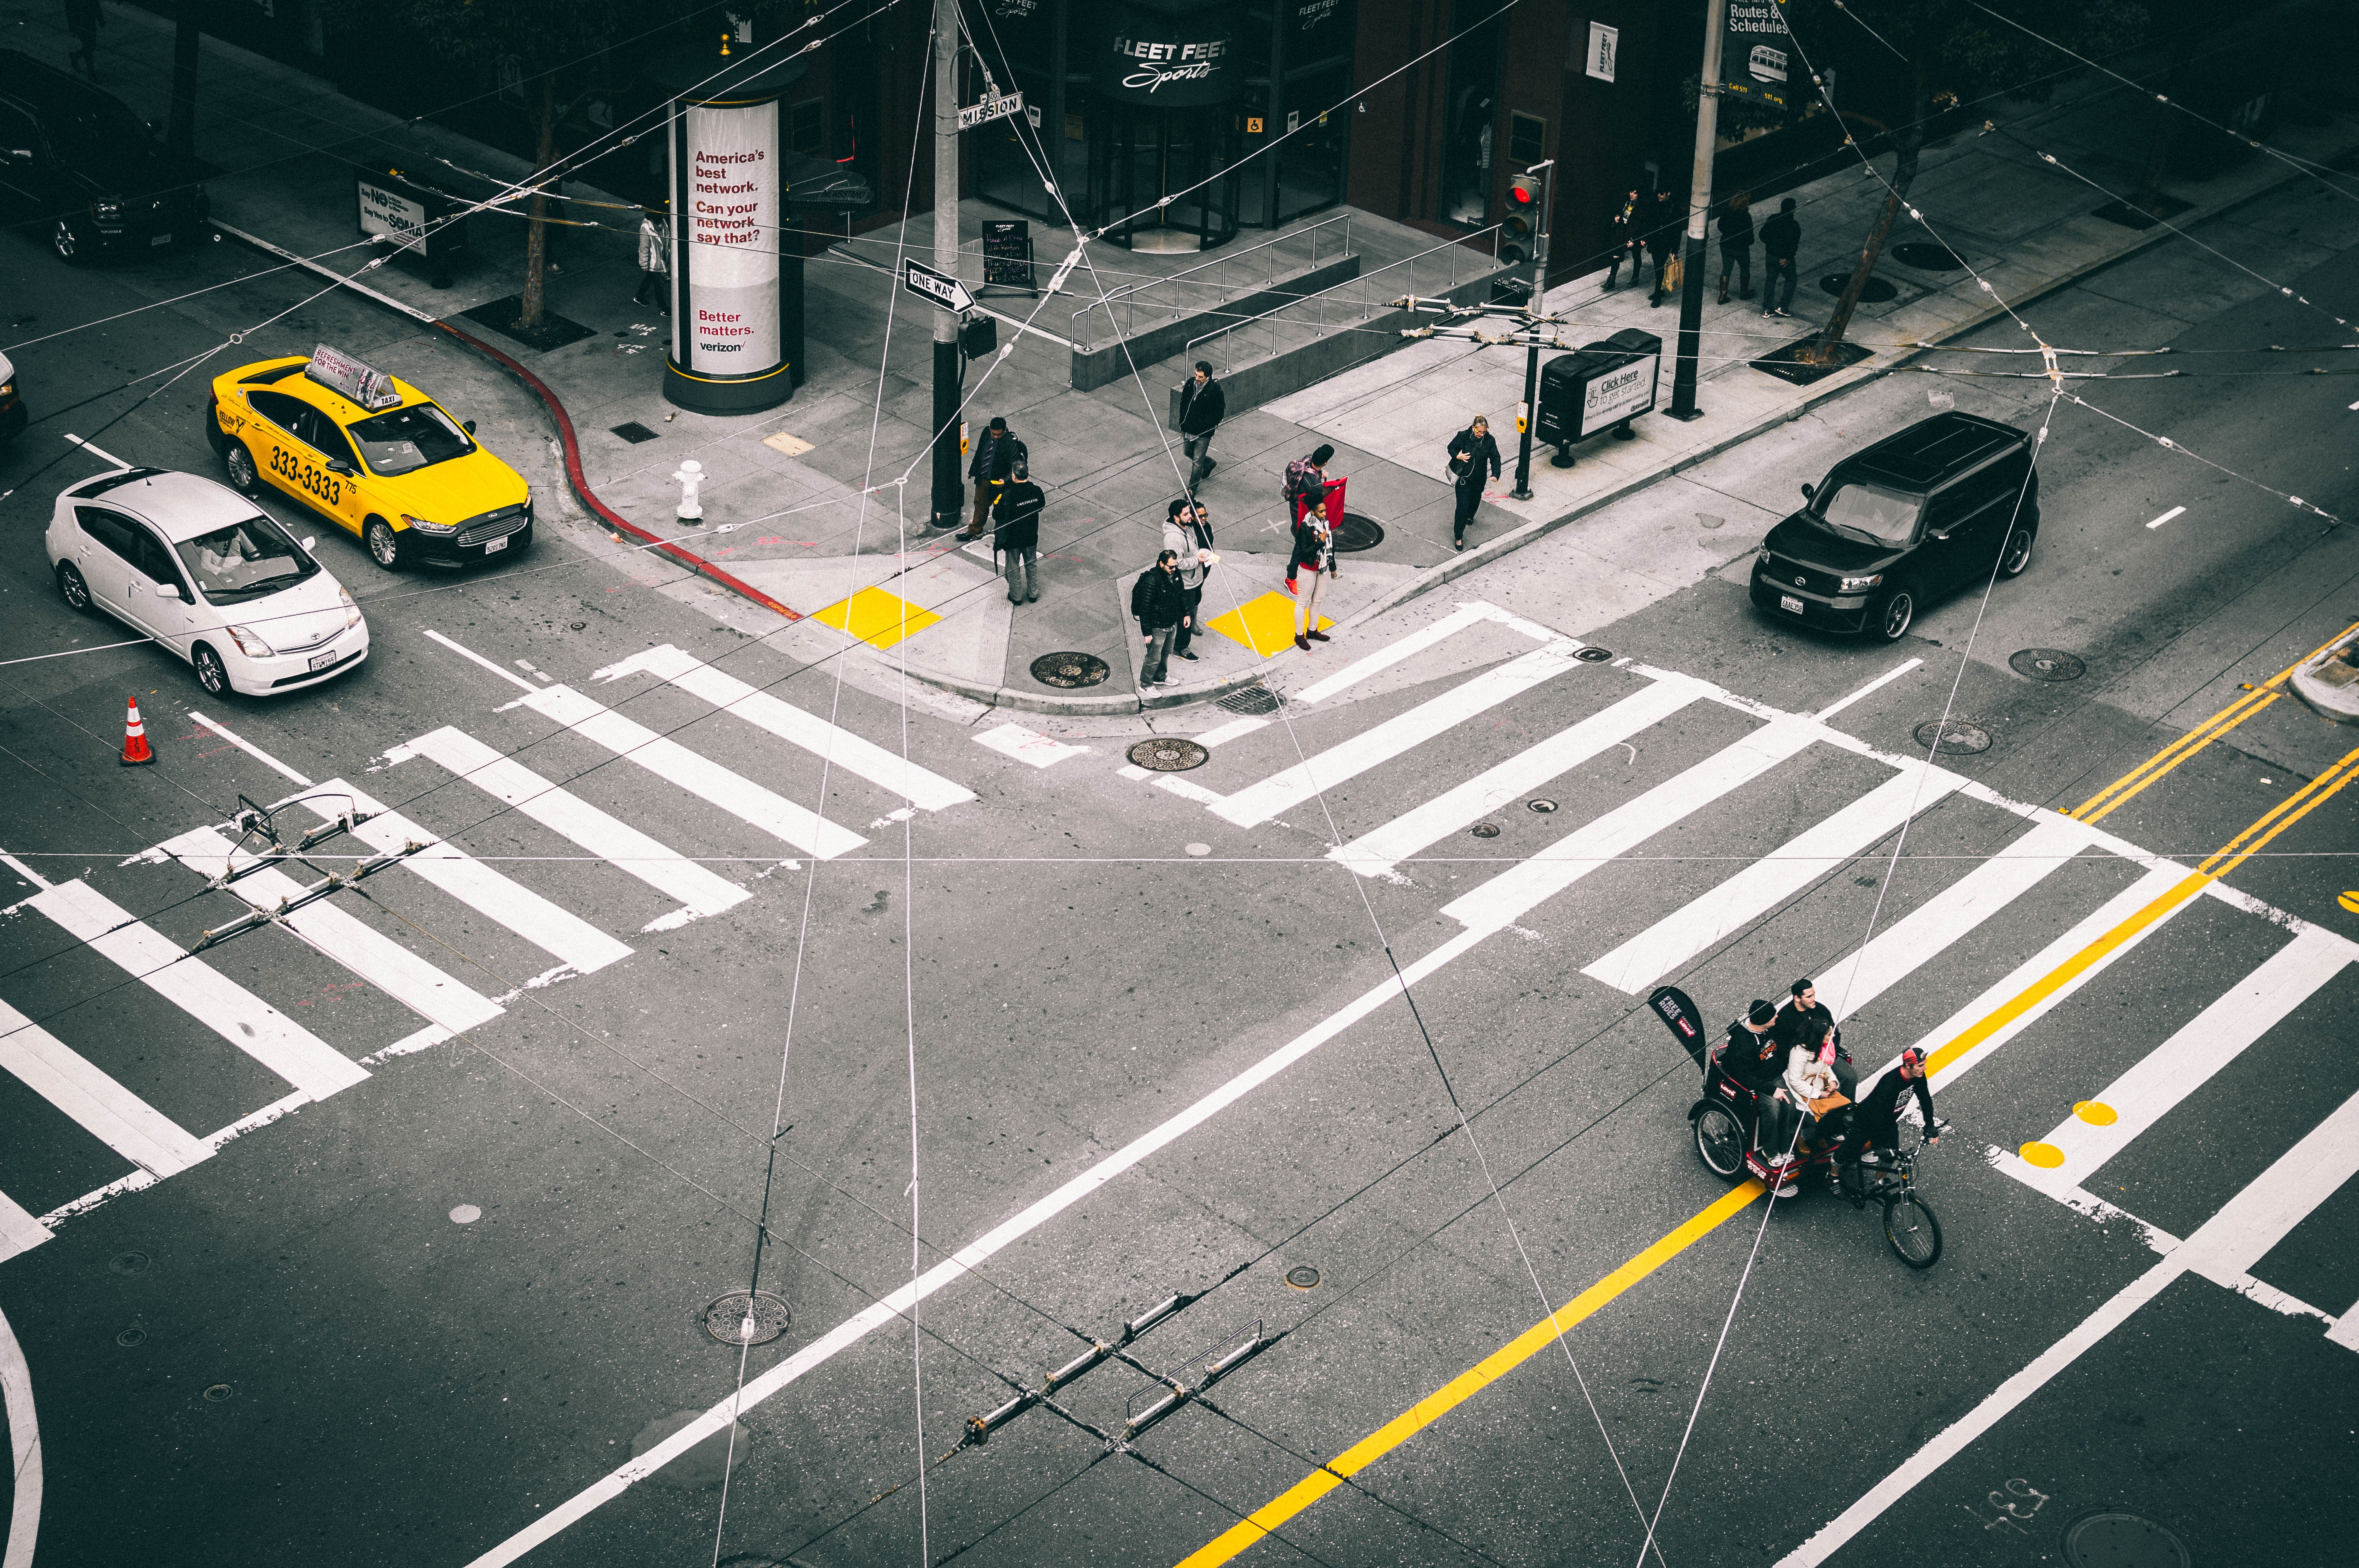 An overhead shot of crosswalks at a San Francisco intersection